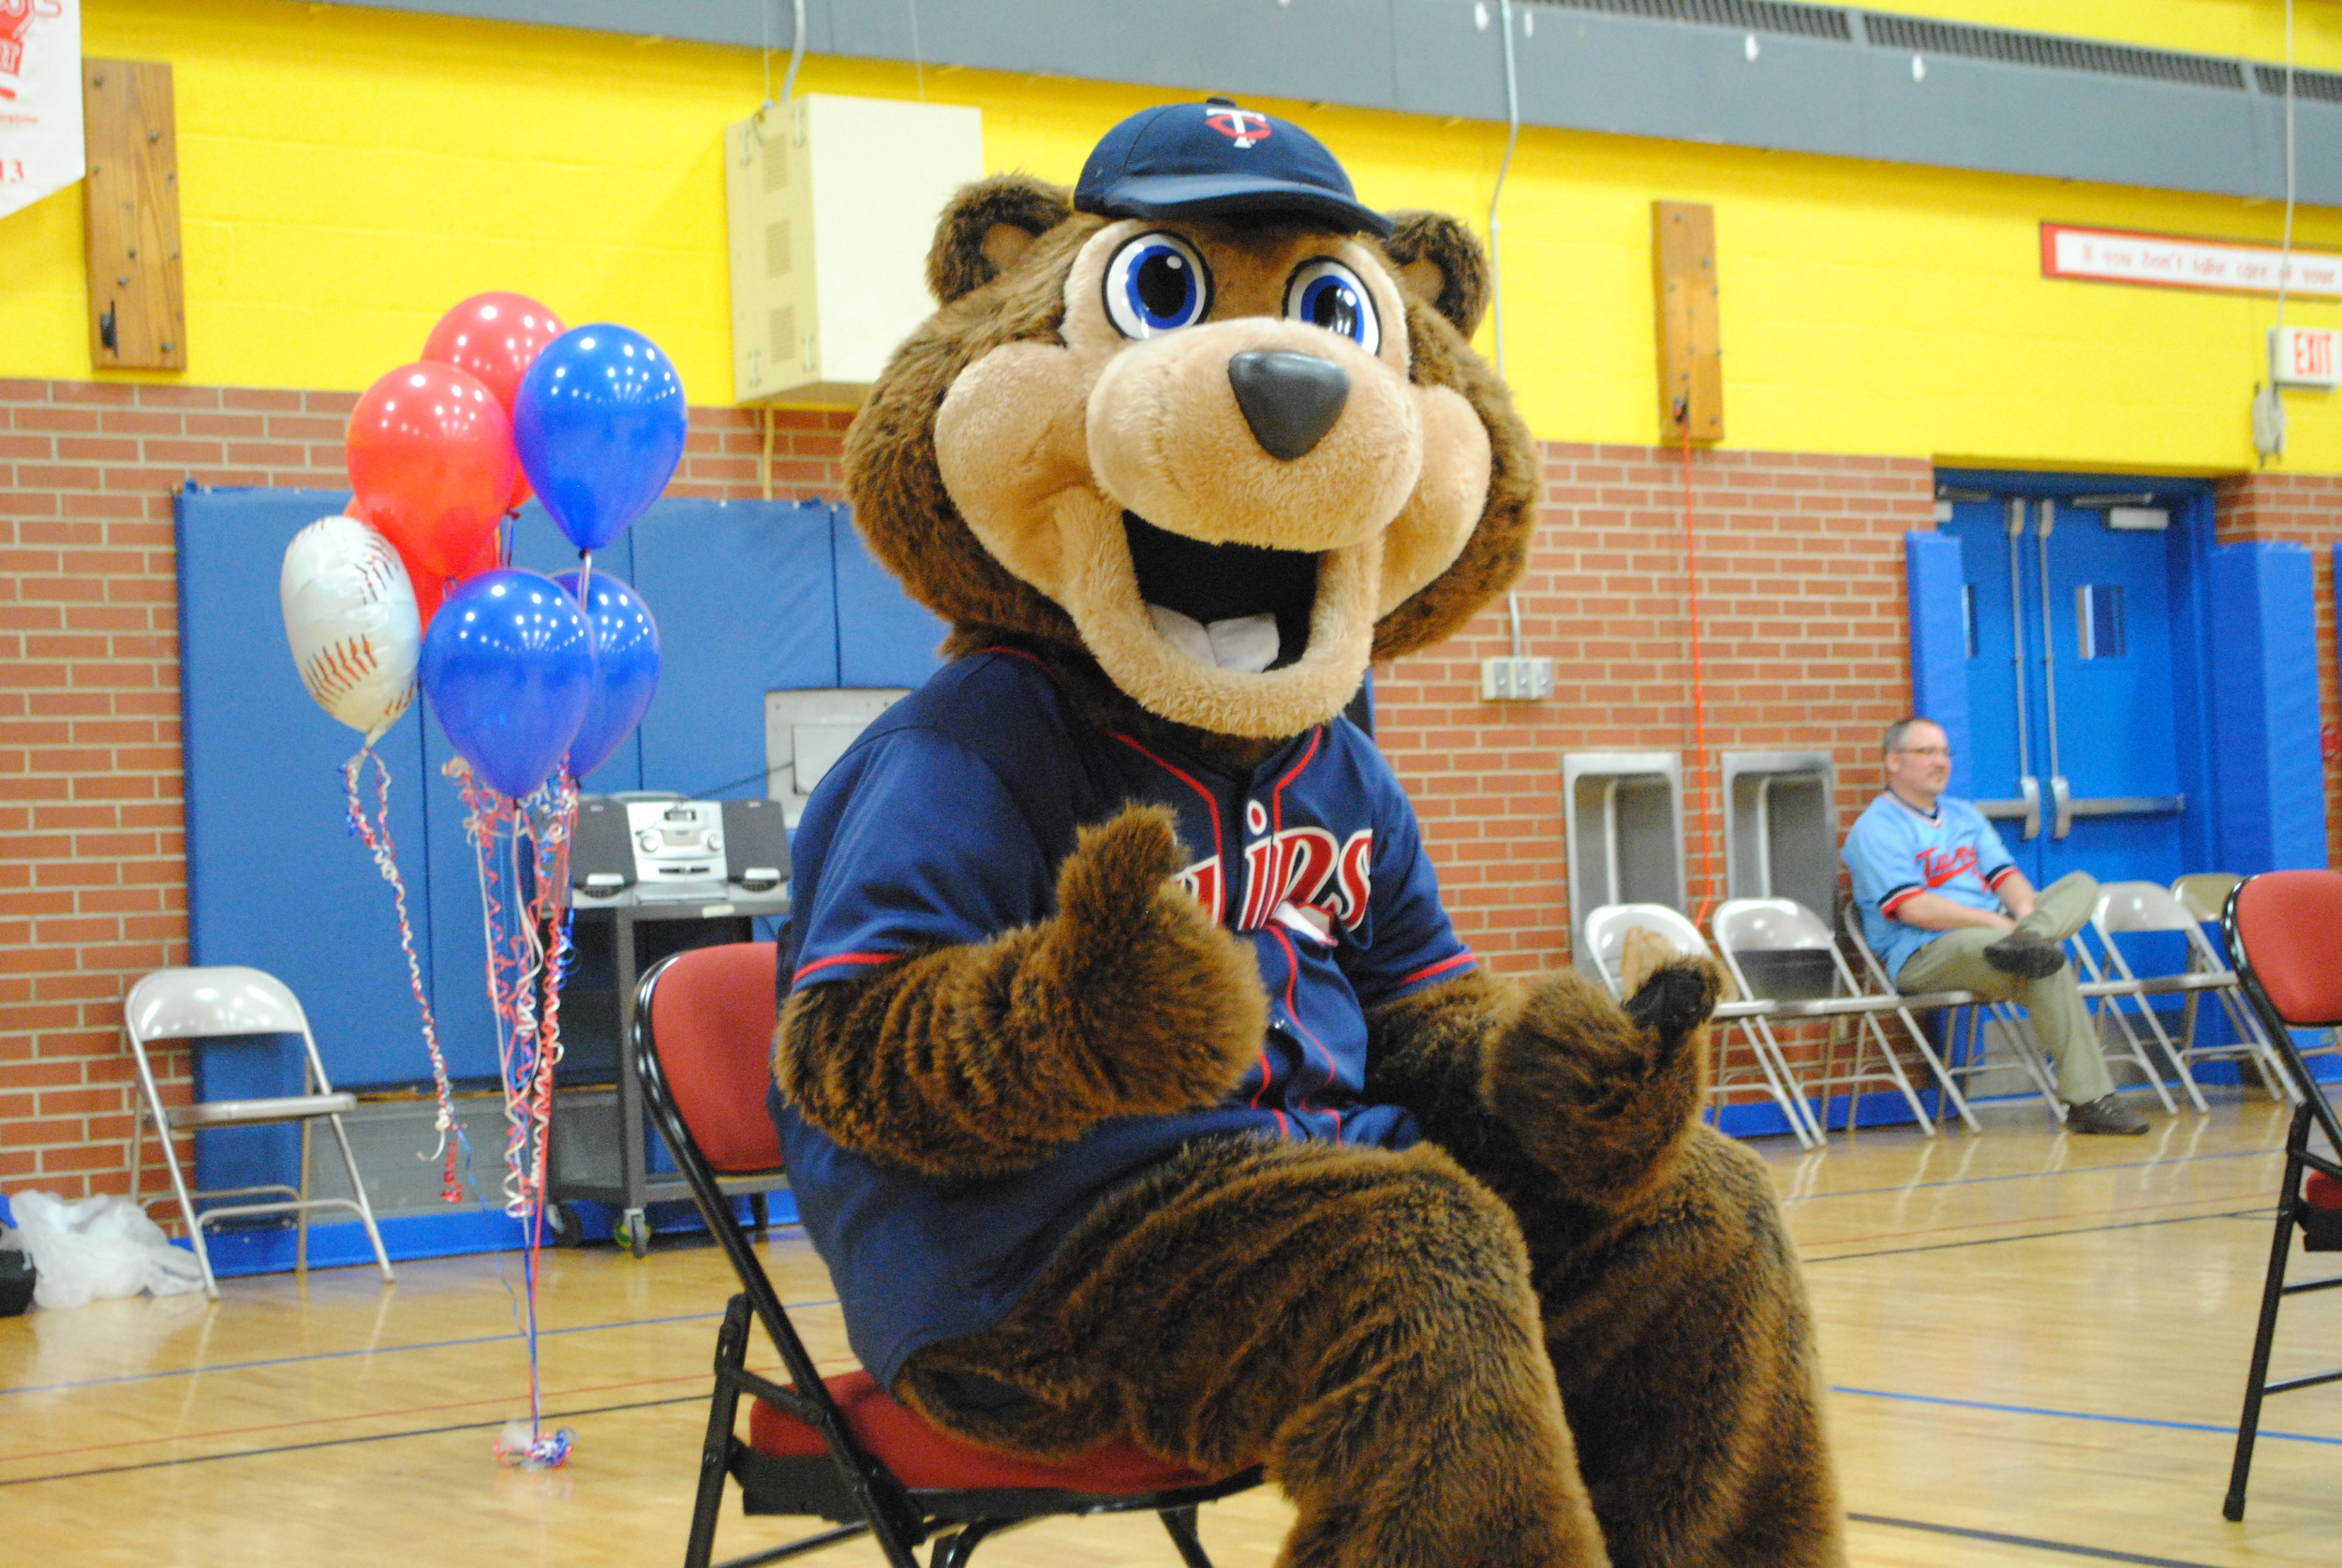 Wadena-Deer Creek K-6 students enjoyed the always entertaining TC Bear. Here he is hamming it up for the camera!